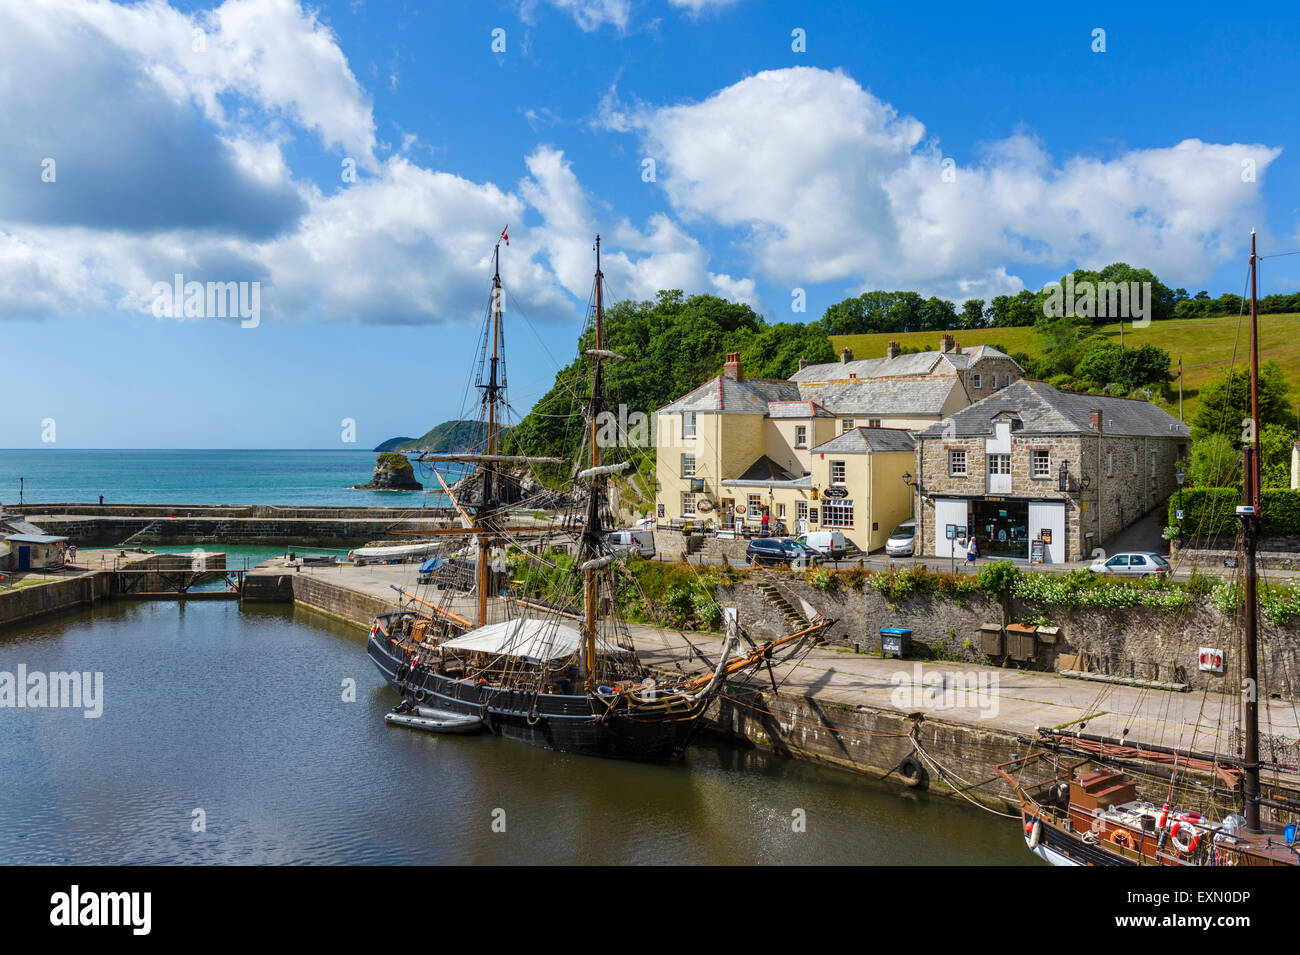 The harbour in the village of Charlestown, St Austell Bay, Cornwall, England, UK - Stock Image